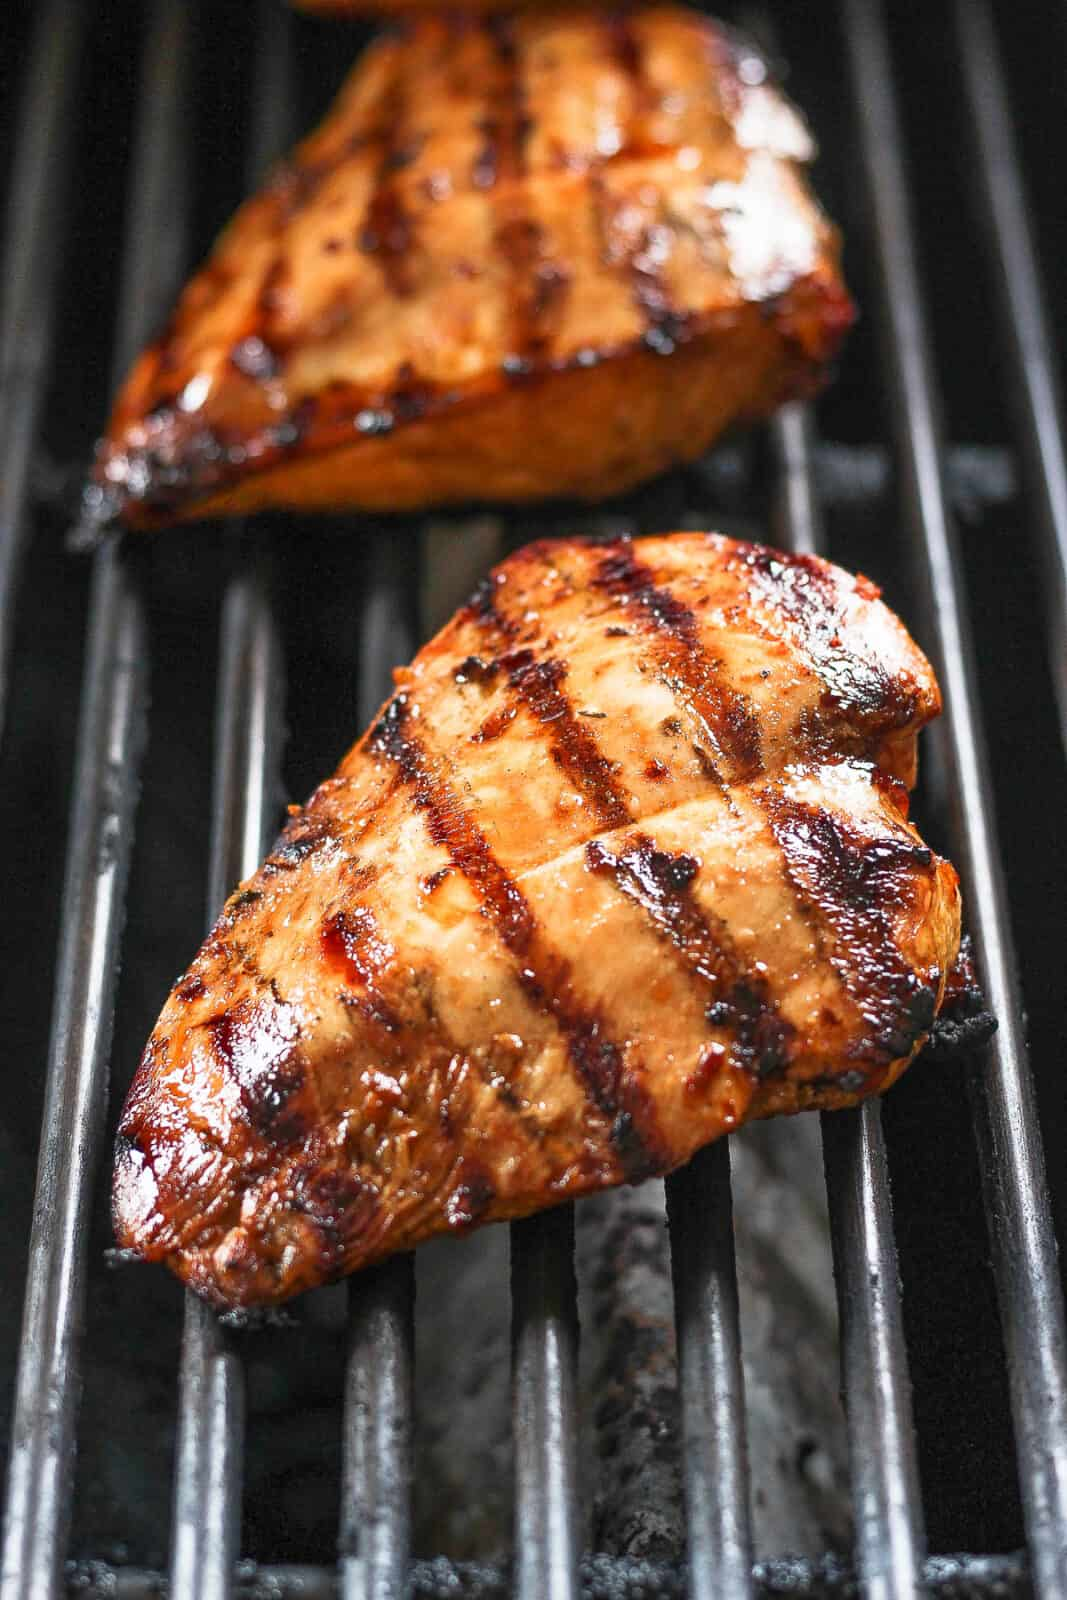 Marinated chicken breasts on the grill.